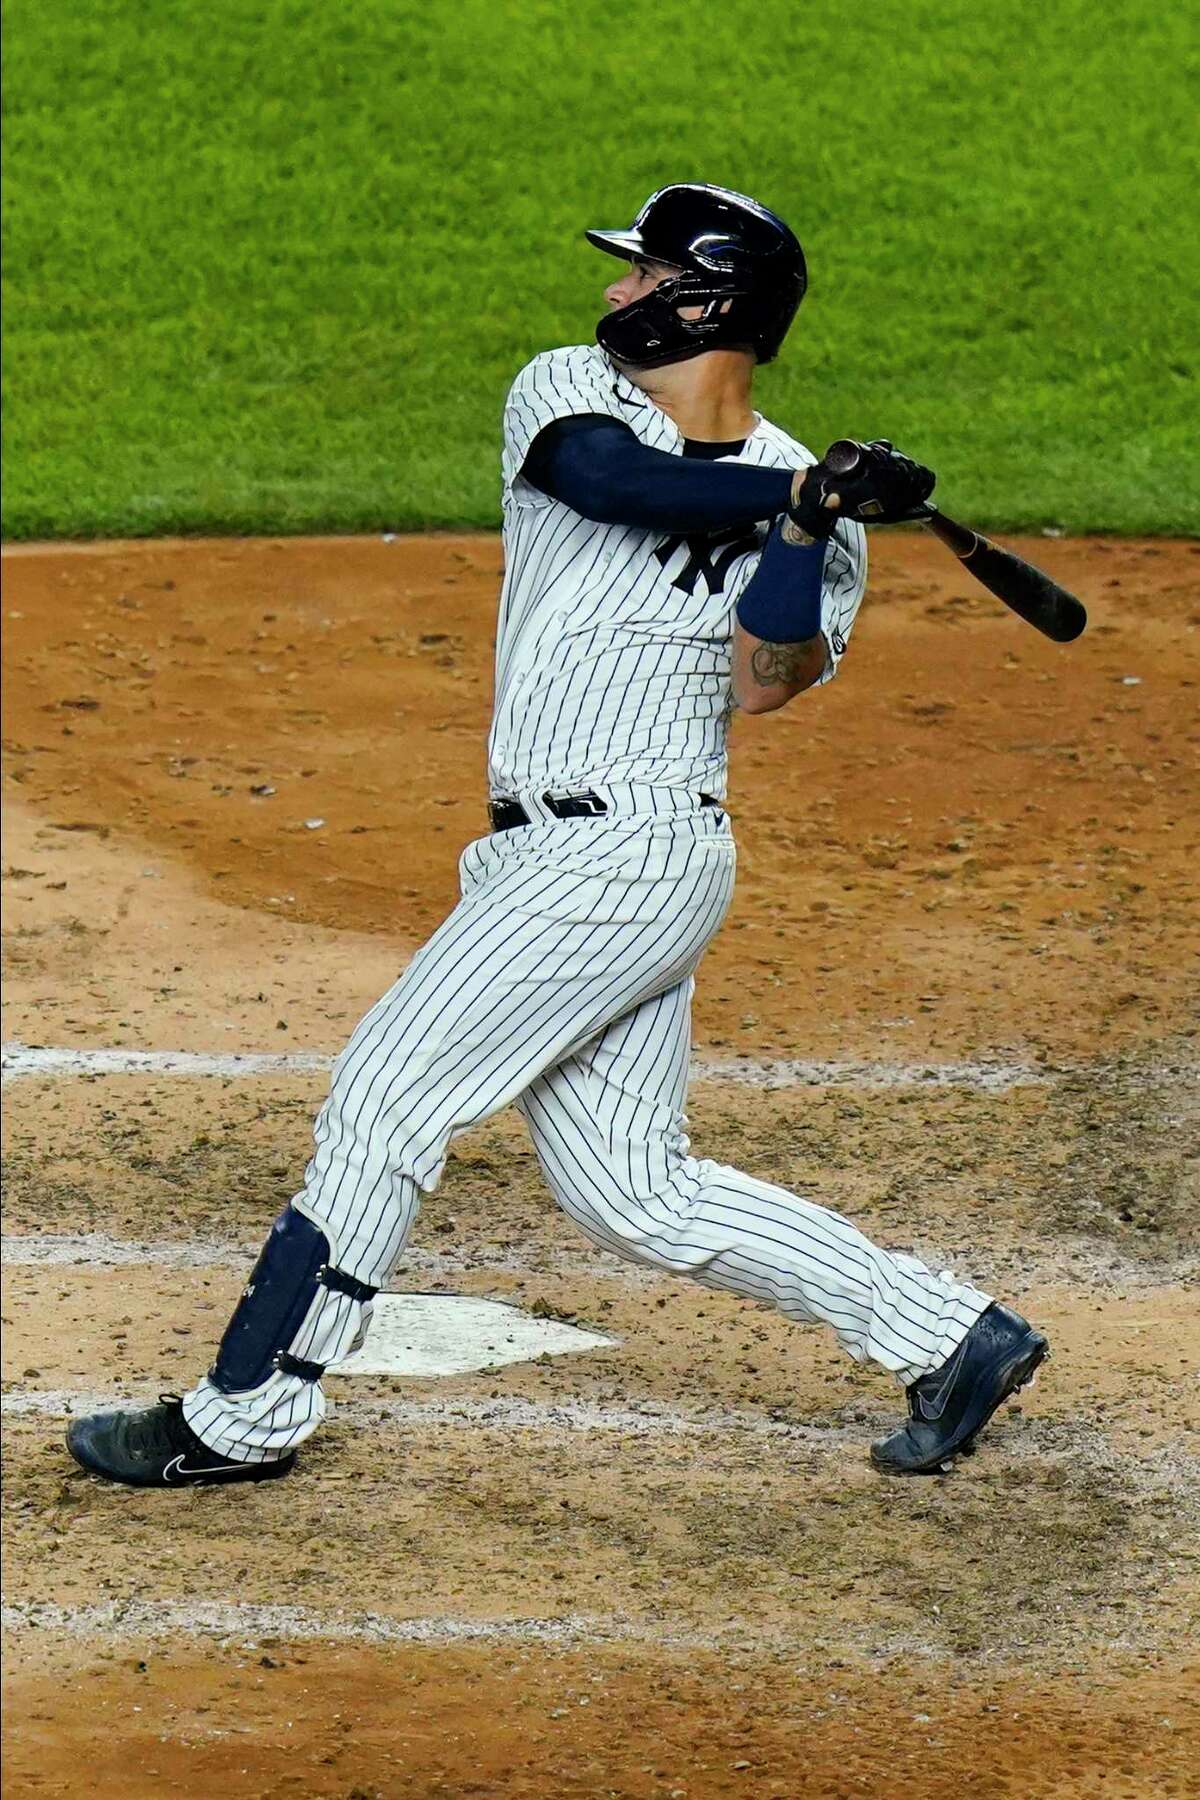 New York Yankees' Gary Sanchez follows through on a two-run home run during the fifth inning of a baseball against the Boston Red Sox game Friday, Aug. 14, 2020, in New York. (AP Photo/Frank Franklin II)